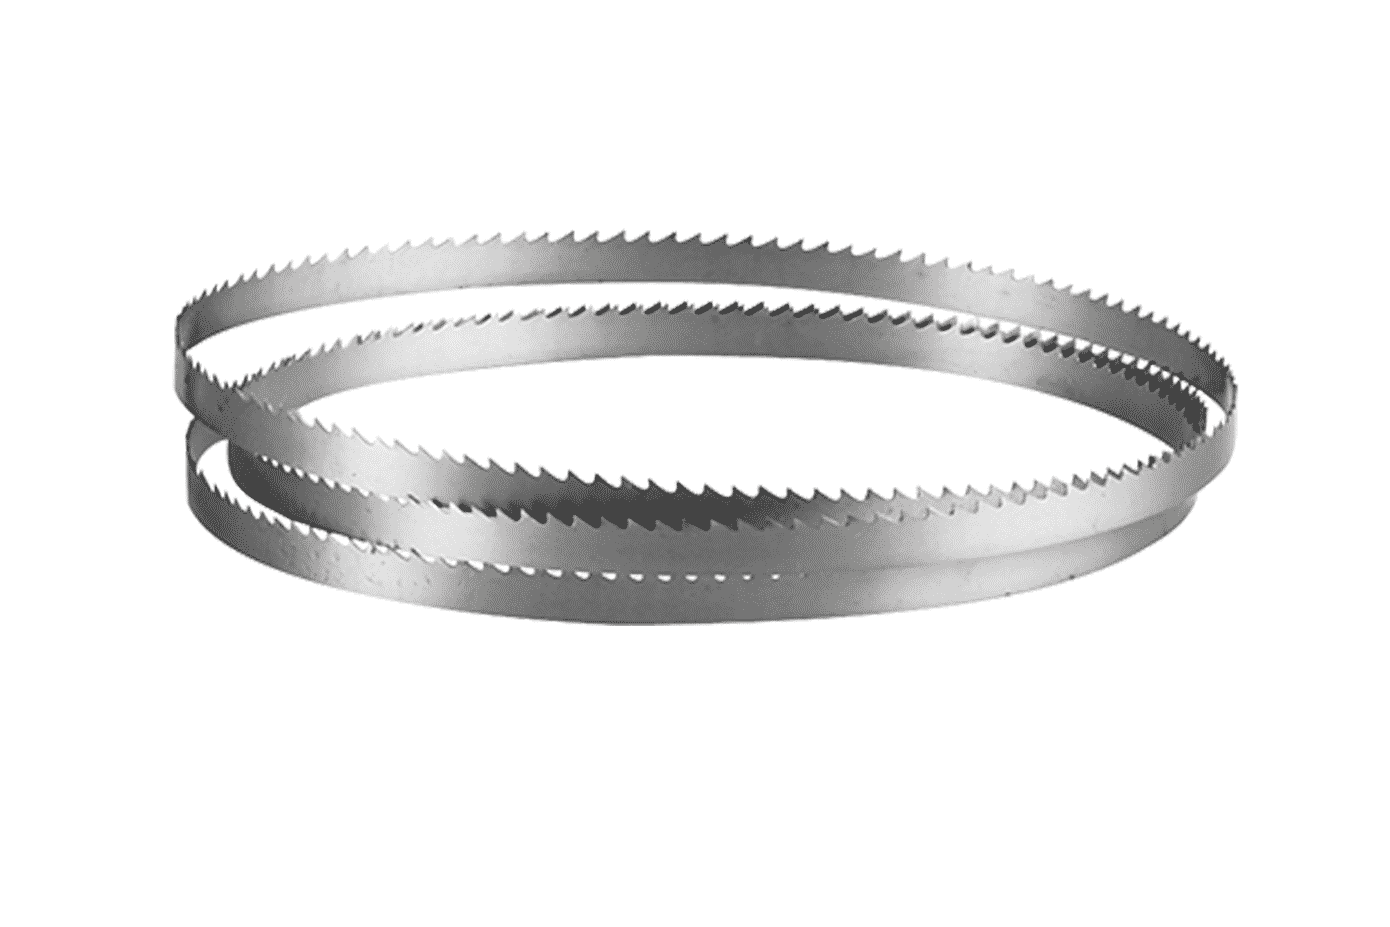 Bandsaw blade coil